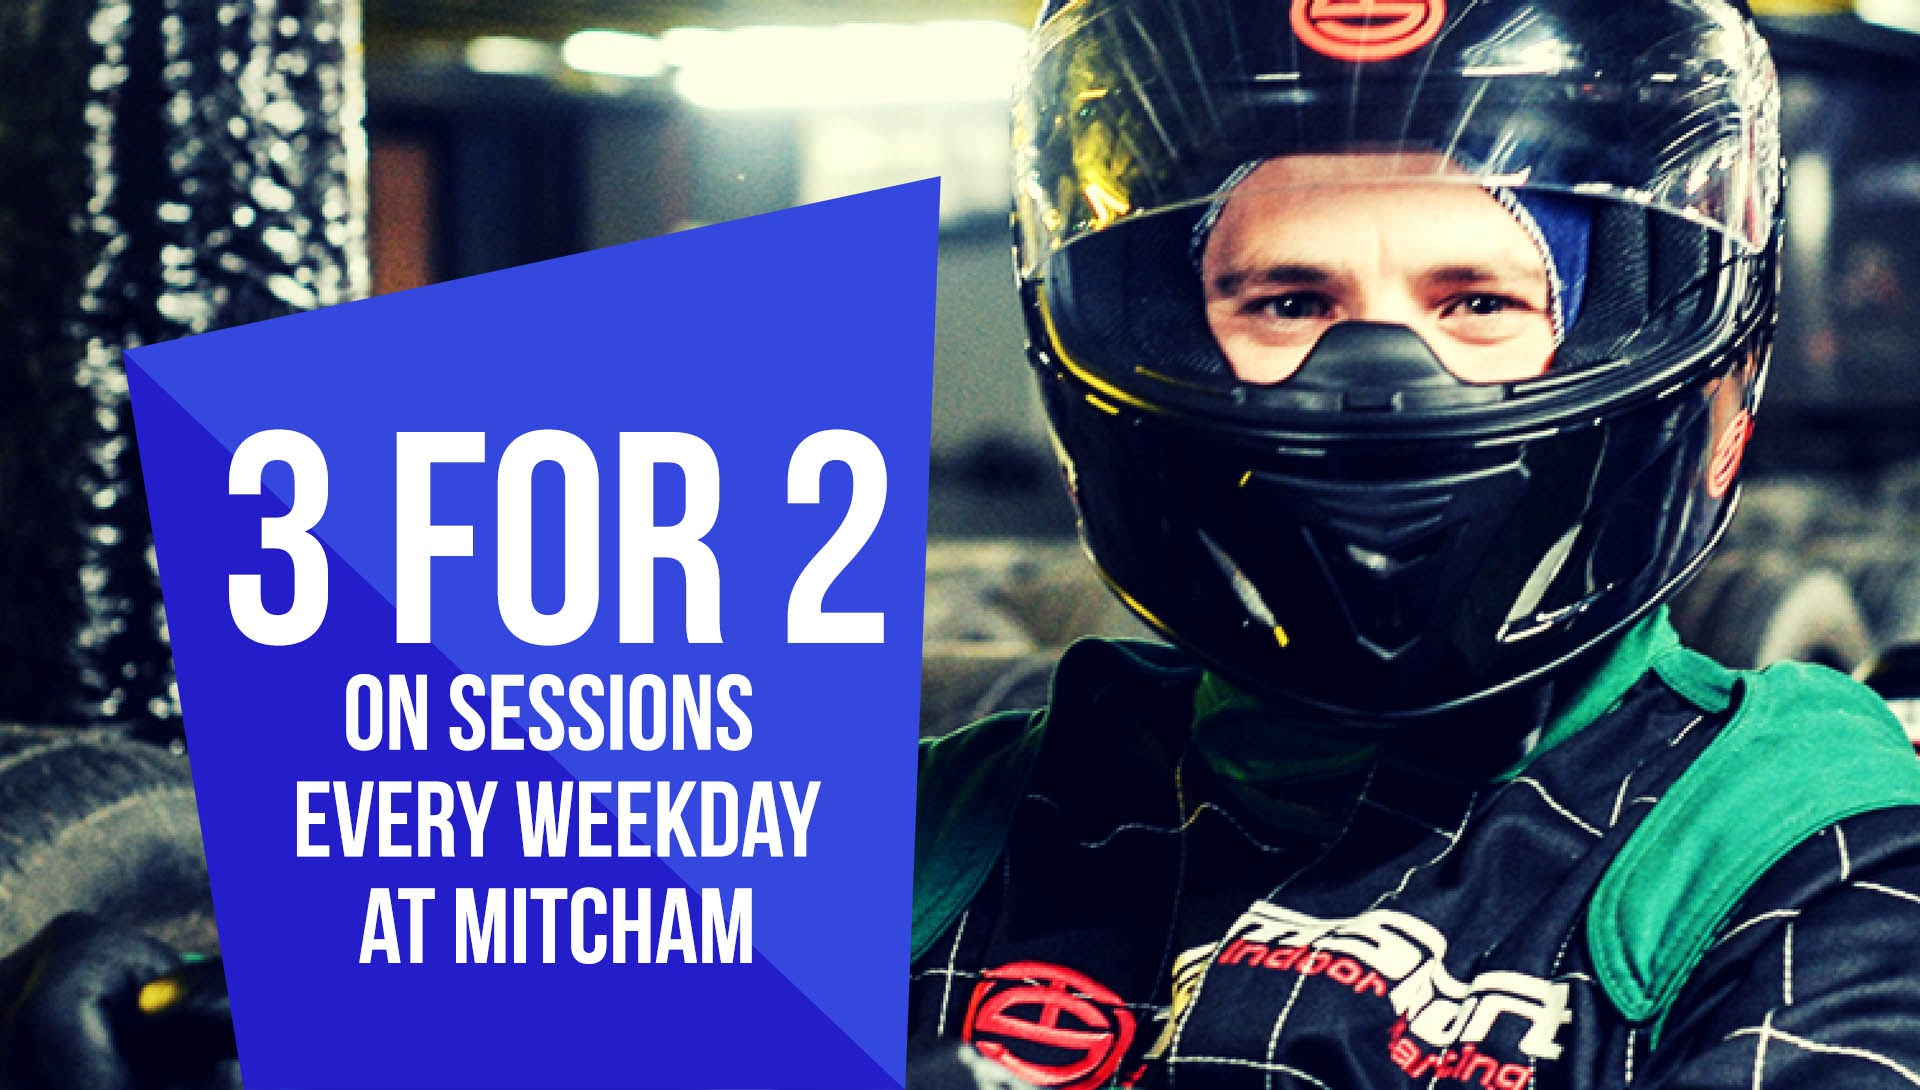 TeamSport_Go-Karting_Offers_Mitcham_3for2-min.jpg